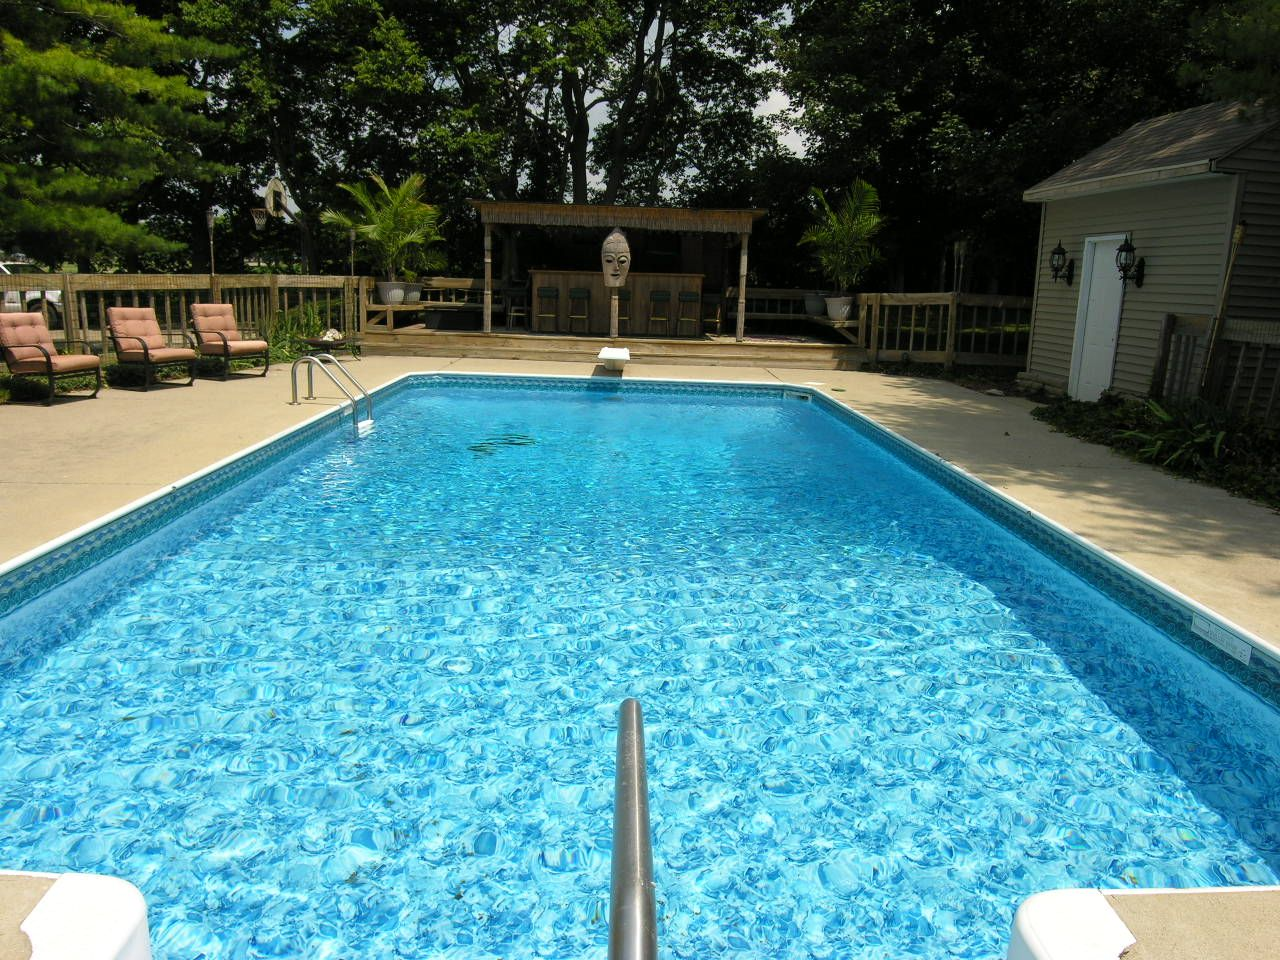 17 best images about in ground pool designs on pinterest swimming pools backyard swimming pool designs and pools